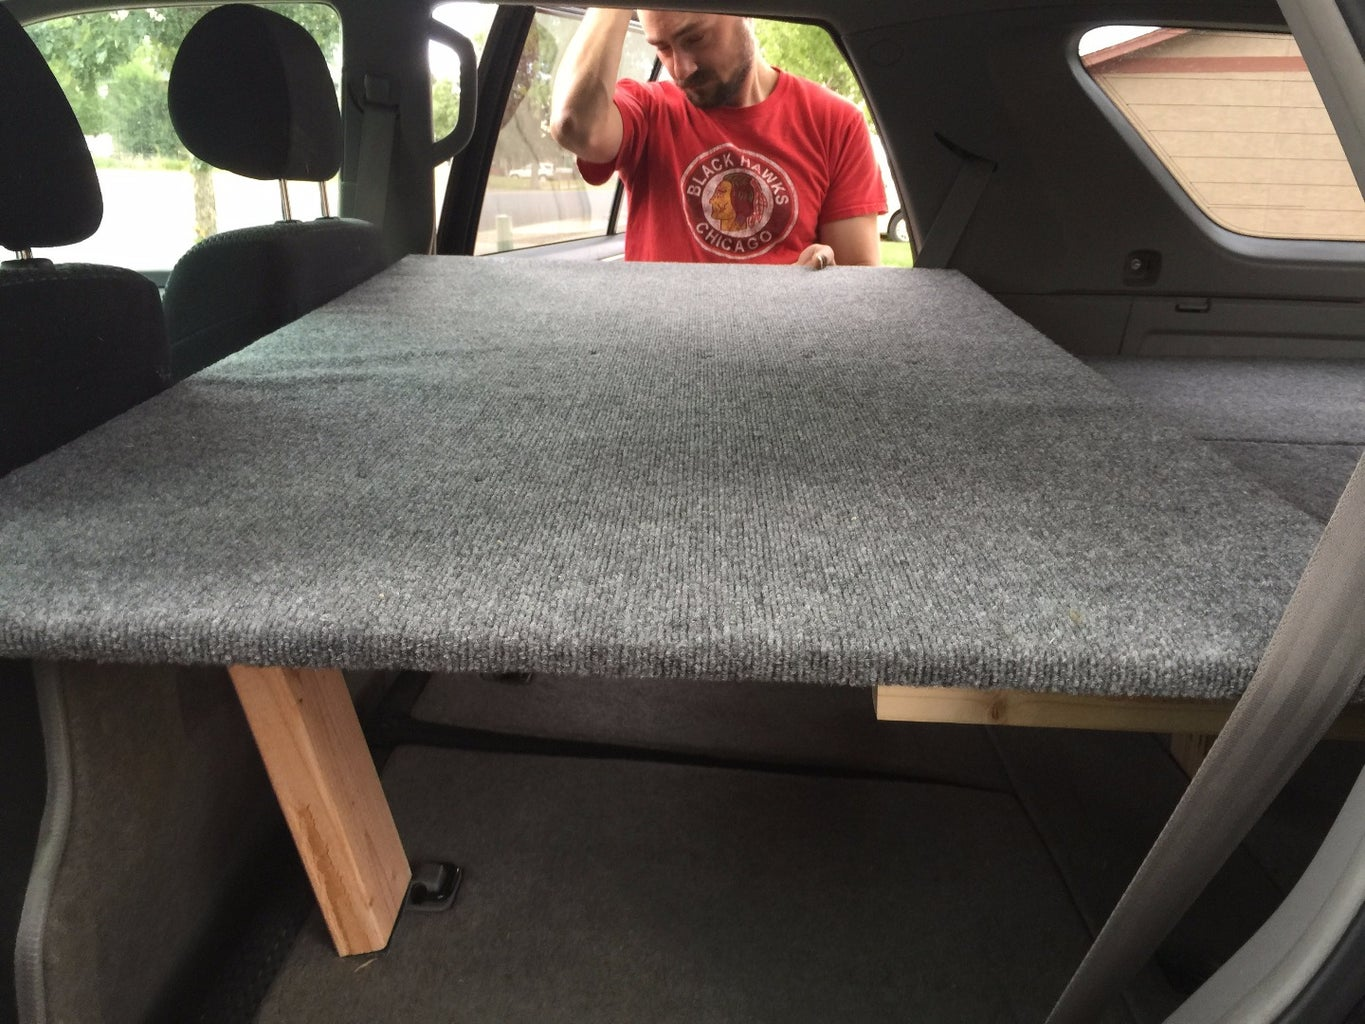 Section 3, Cover the Back Seats